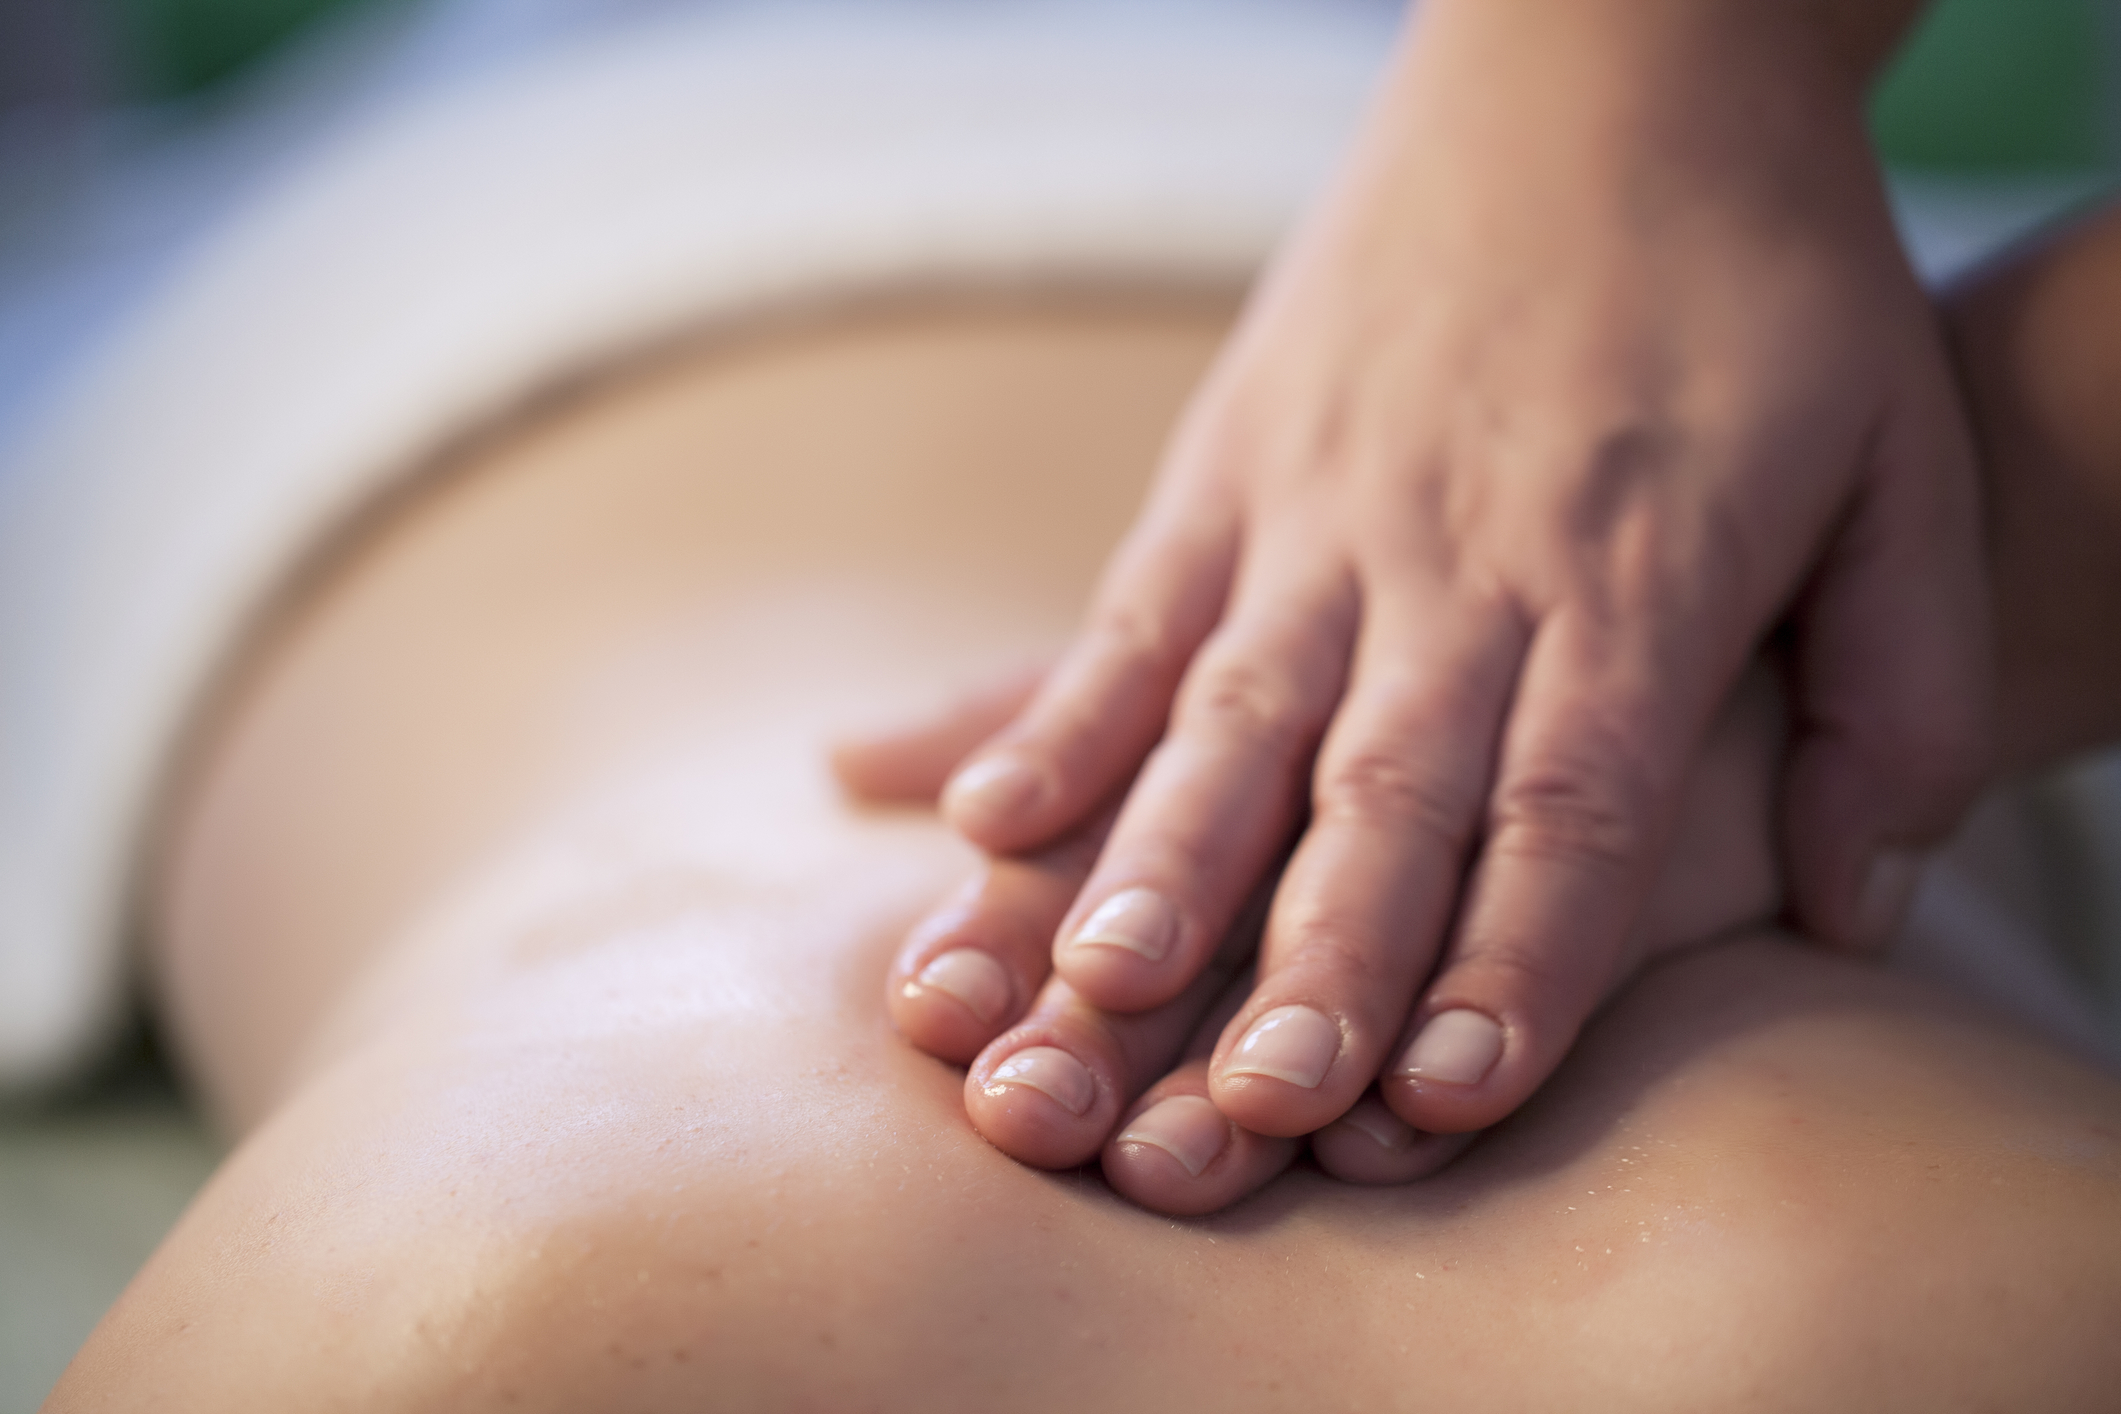 Applied Kinesiology Chiropractor - Ithaca, NY - Dr. Jaclyn Borza Maher  photo credit ©  Brainsil  |  Dreamstime.com